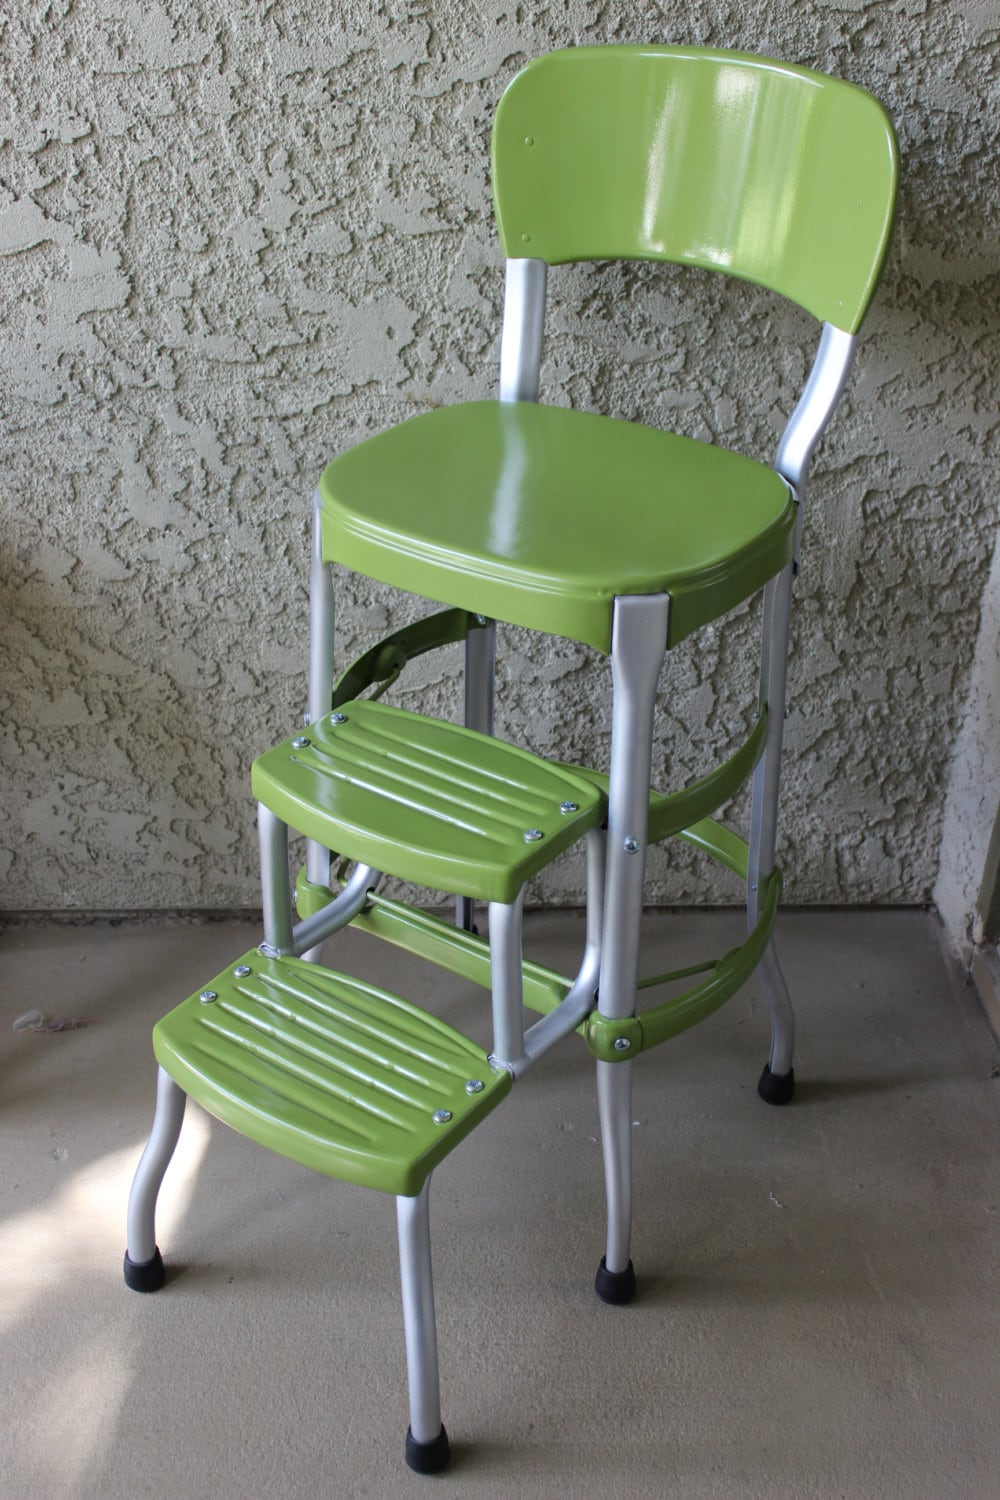 Vintage Green Cosco Step Stool